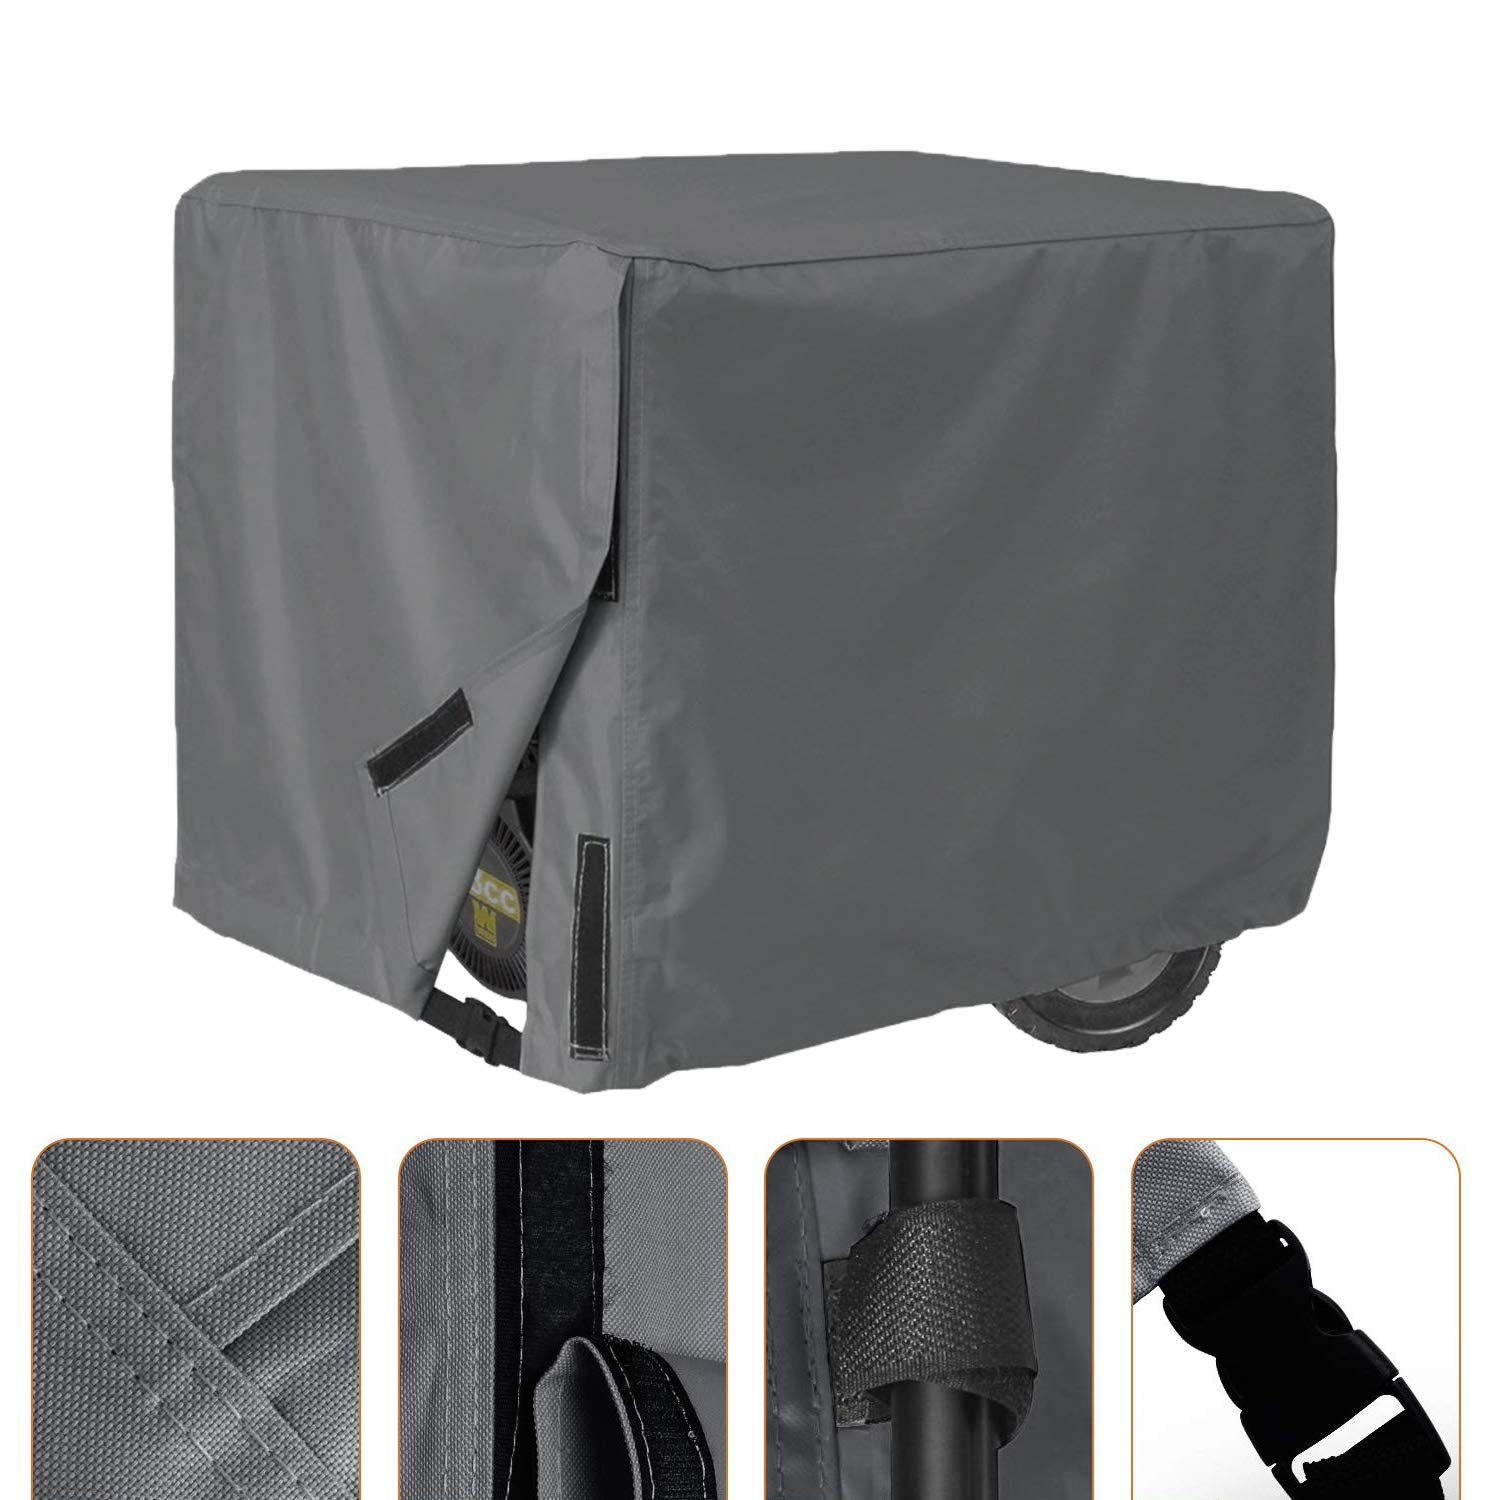 AKEfit Generator Cover Universal Waterproof Sunscreen Durable Heavy Duty Resistant Storage Cover Fits up to 28x38x30 inch Gray